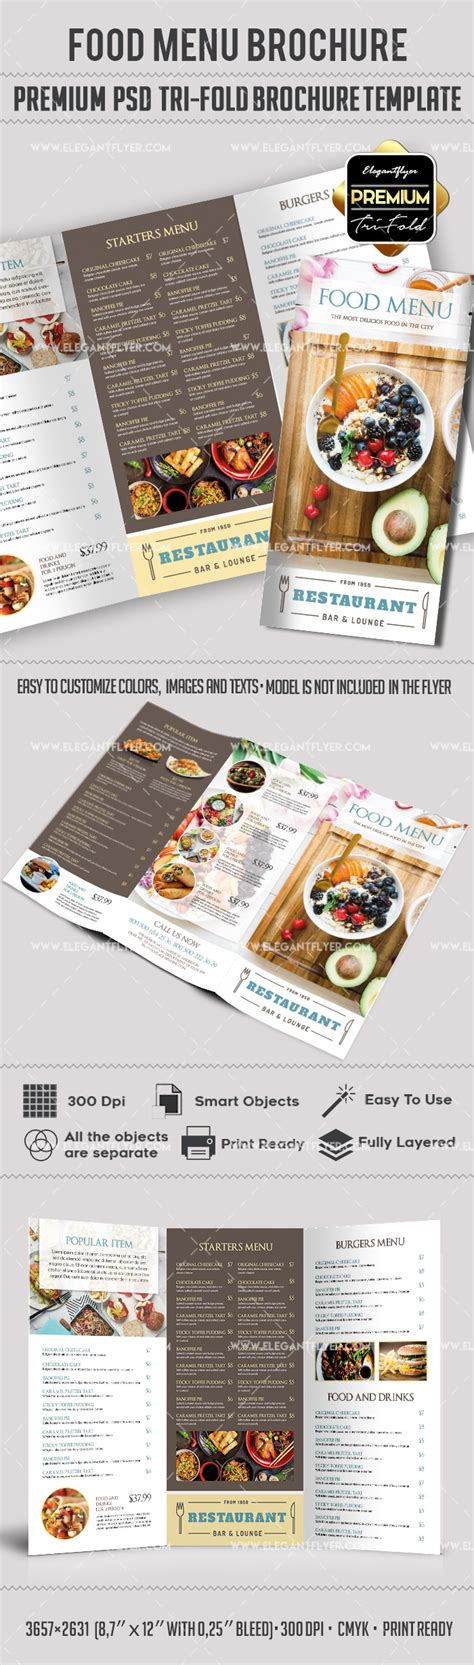 Menu Brochure Template Free by Food Menu Premium Tri Fold Psd Brochure Template By